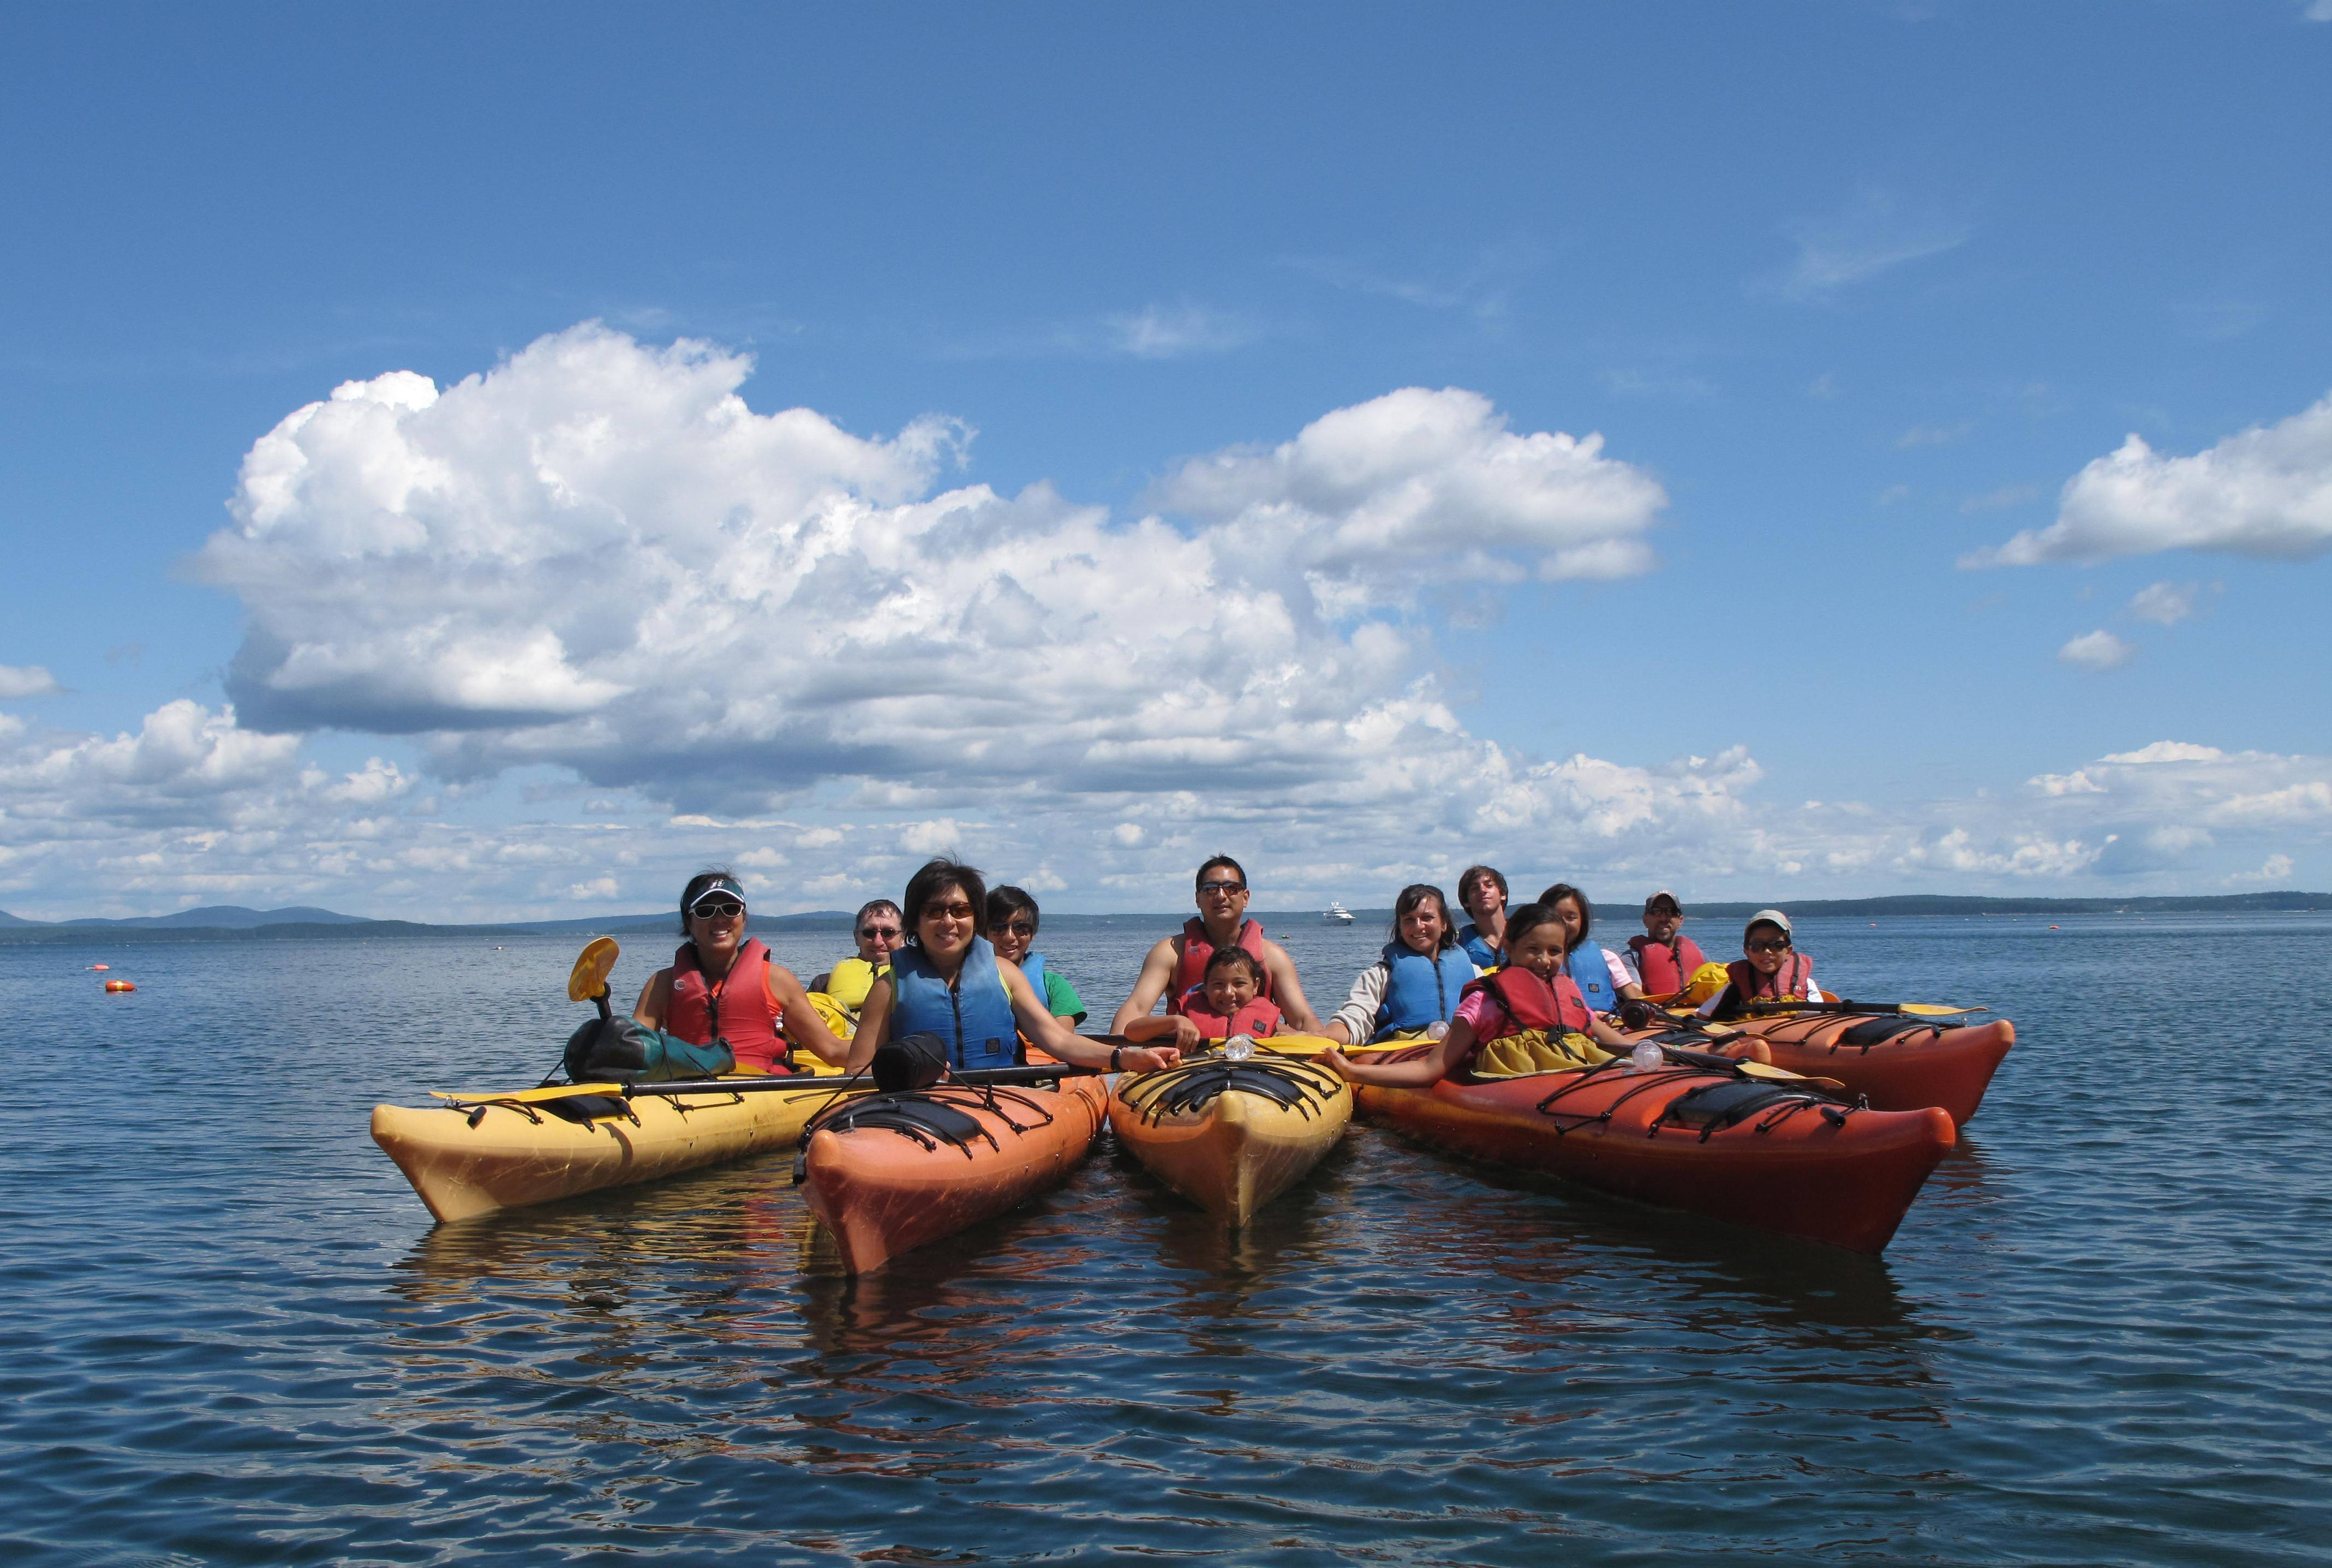 Grab a kayak and explore! Credit: Coastal Kayaking Tours